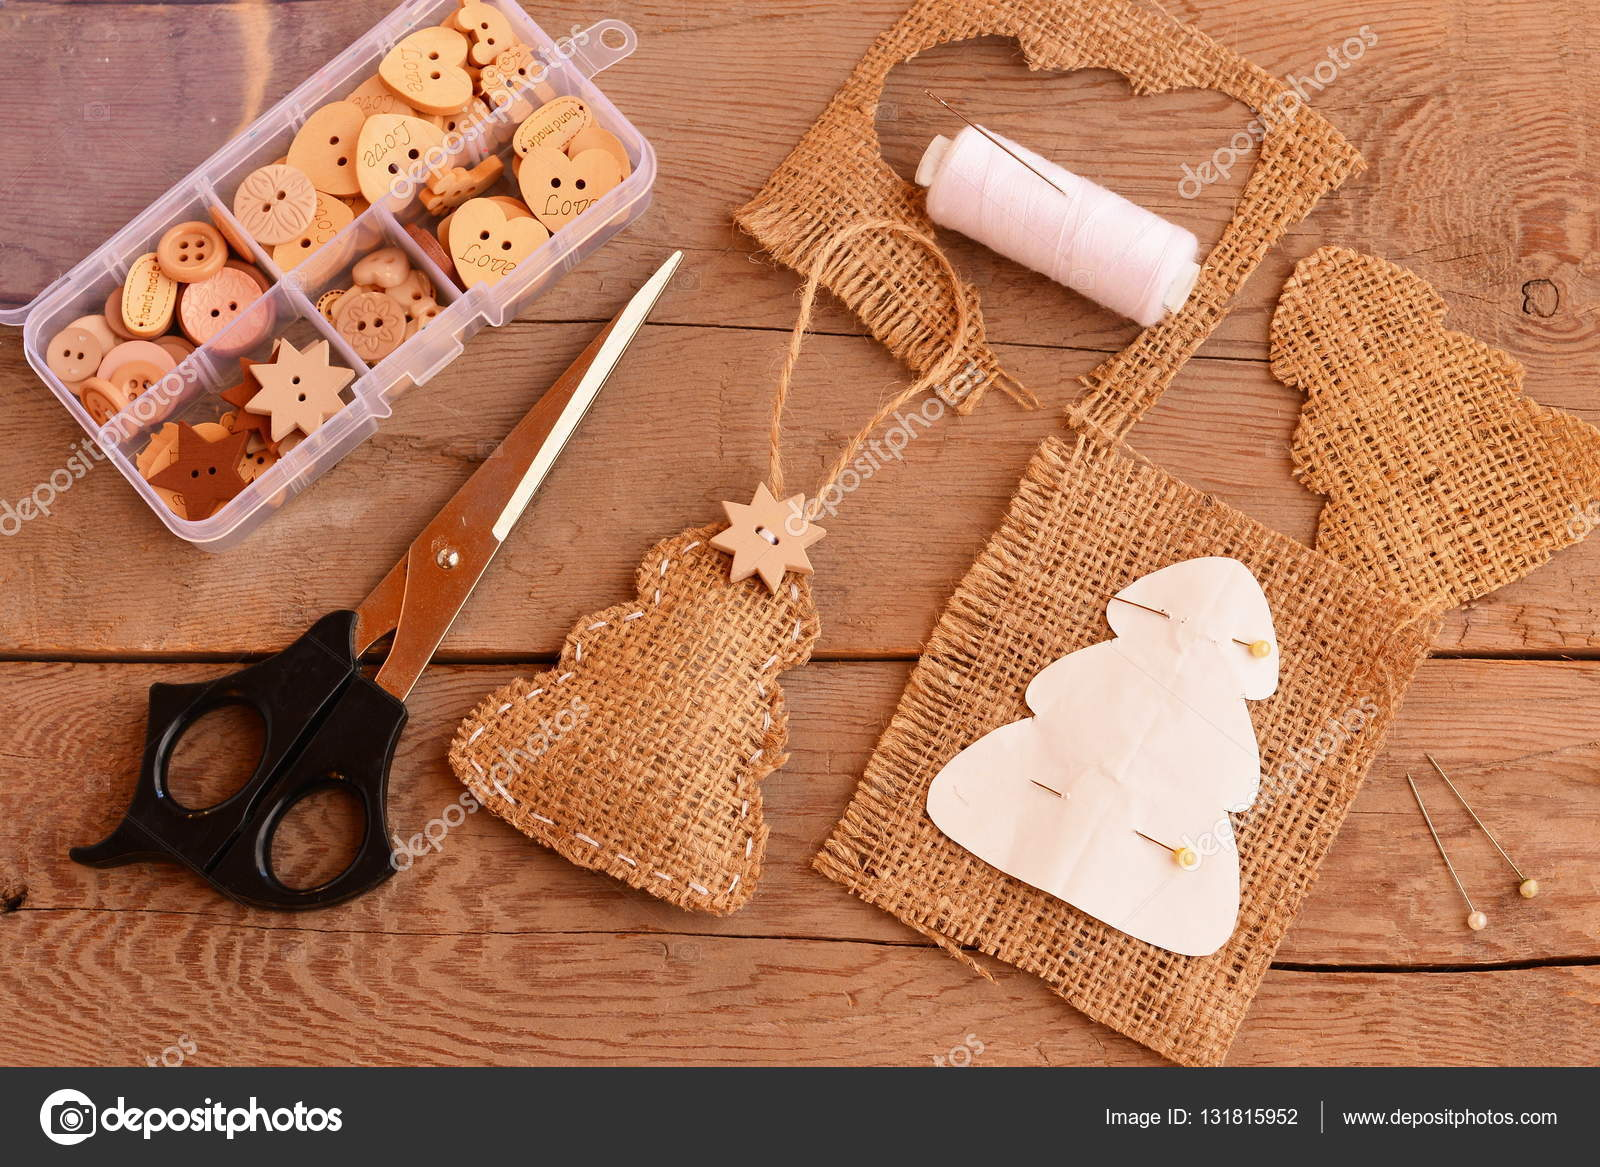 Burlap Christmas Tree Decorated Wooden Star Button Paper Tree Template Thread Pins Scissors Wooden Buttons In Box On Old Background Creating Christmas Tree Ornaments Diy Easy Christmas Ornaments Crafts Rustic Style